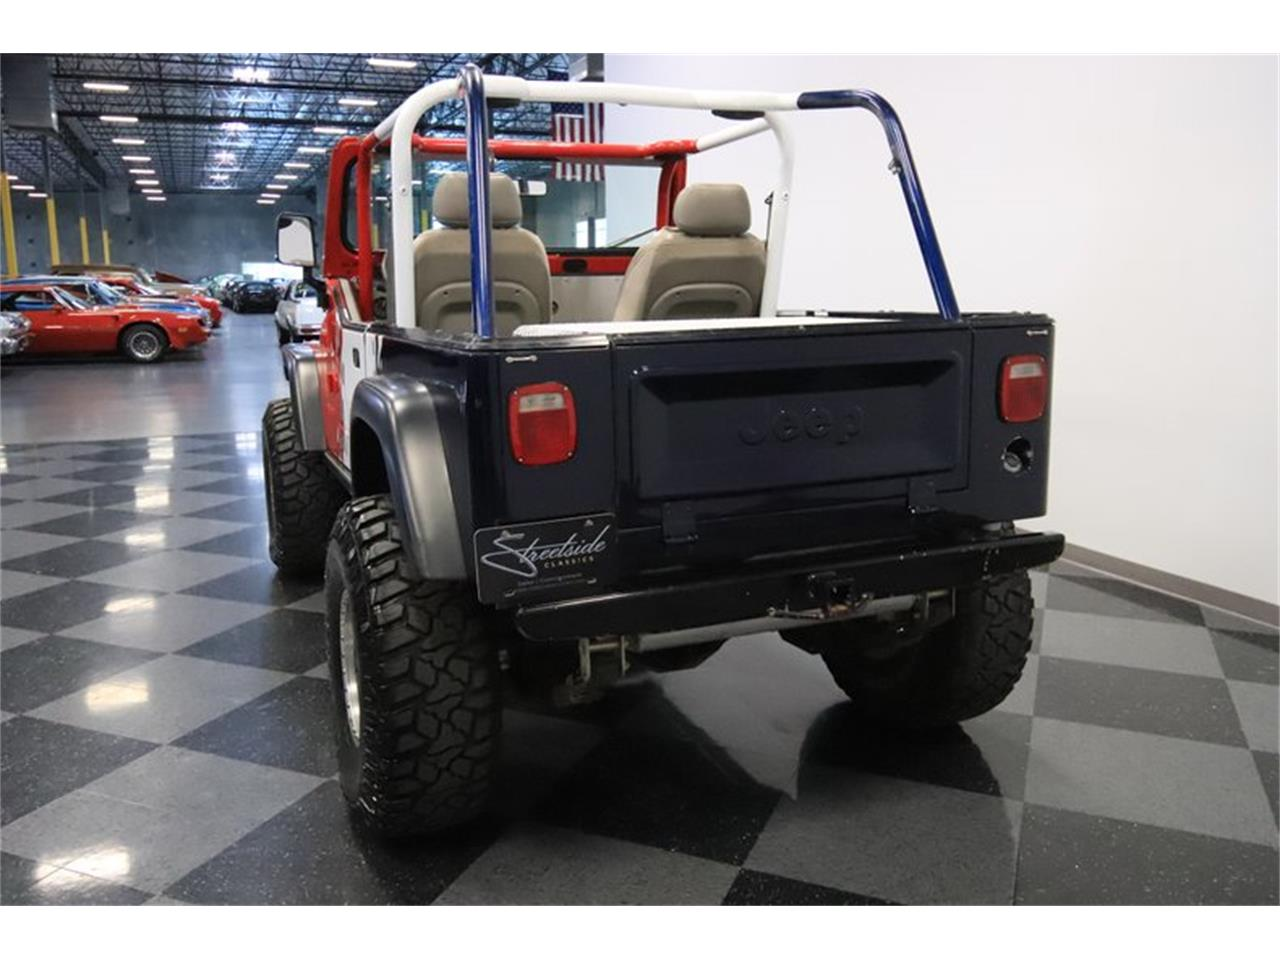 1983 Jeep CJ8 Scrambler for sale in Mesa, AZ – photo 9